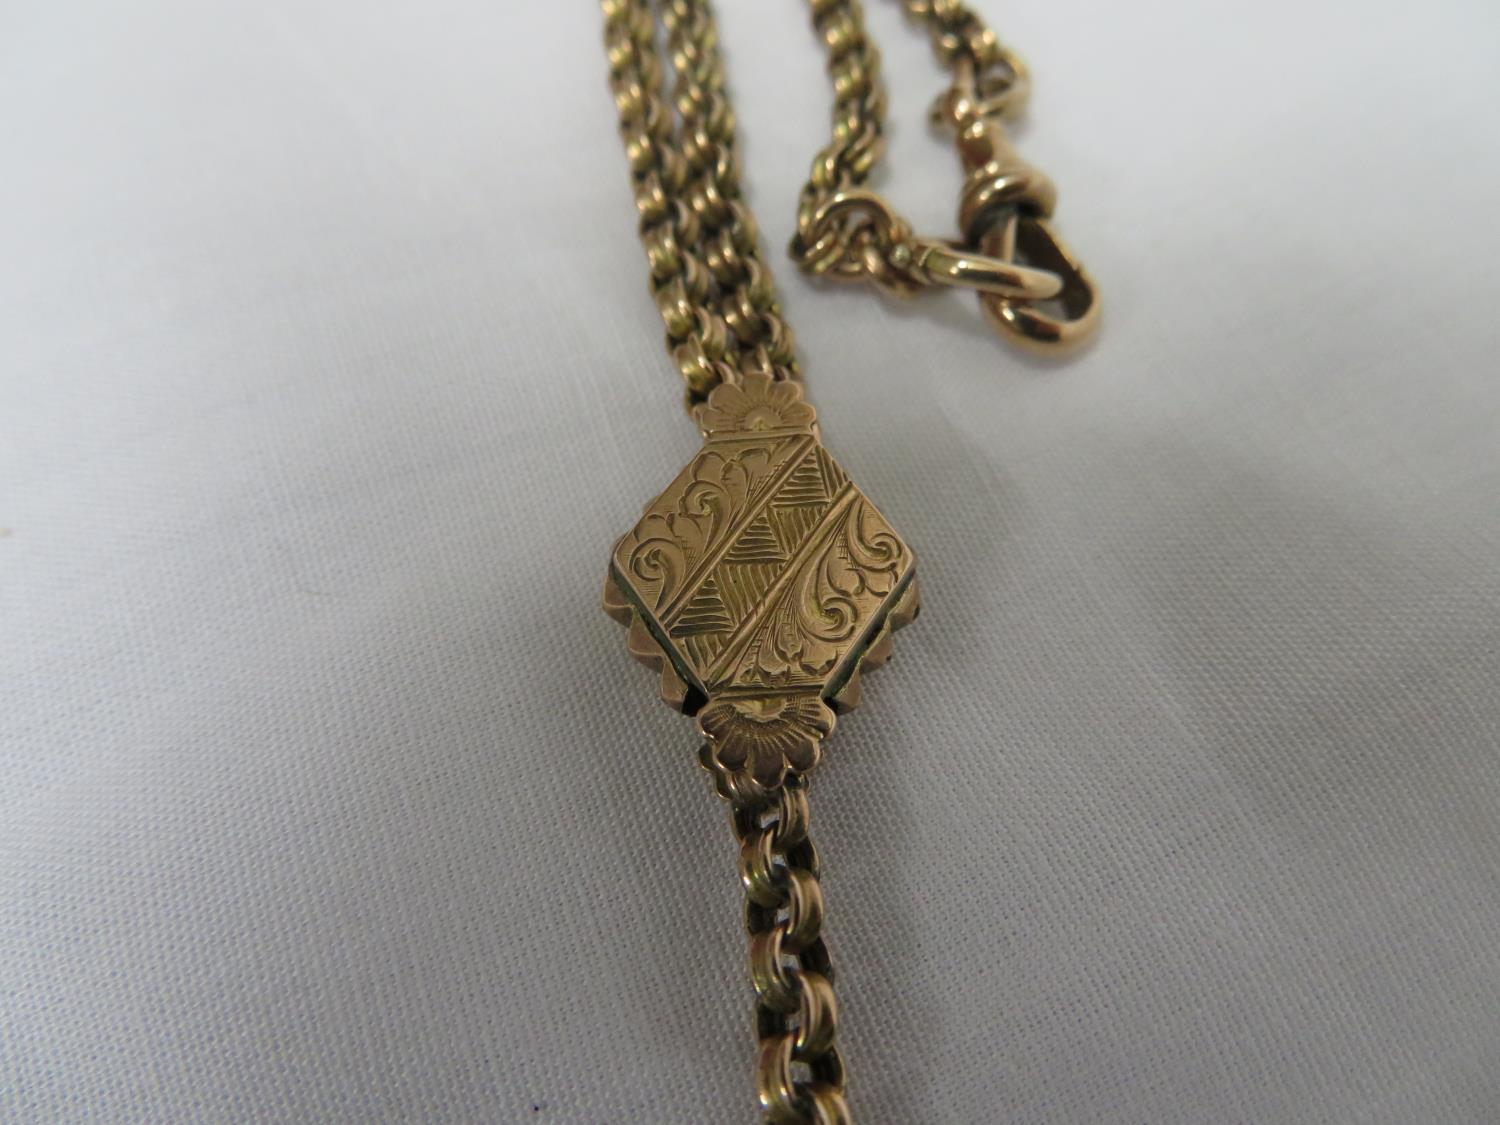 Lot 27 - 9ct gold Albertina Victorian watch chain - 17.9 grams